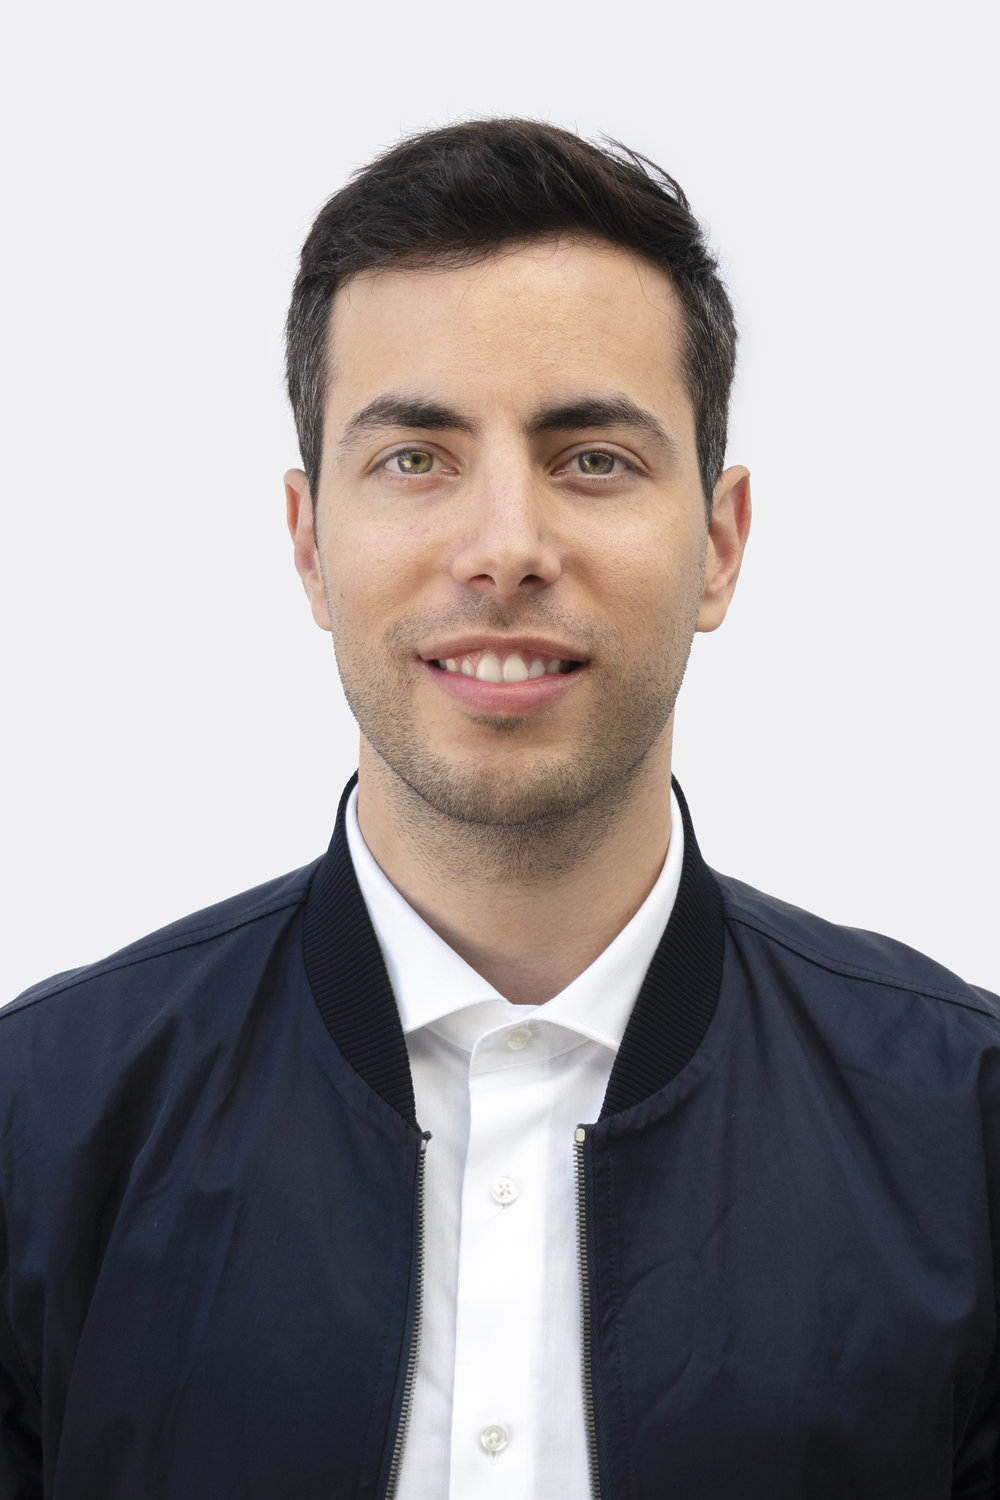 Noam Saragosti Architectural Designer  Noam Saragosti joined Charlap Hyman & Herrero's Los Angeles office as a designer in 2018. He received his architectural training at the Harvard Graduate School of Design and at Cal Poly Pomona University. Noam concurrently lectures at Cal Poly Pomona.